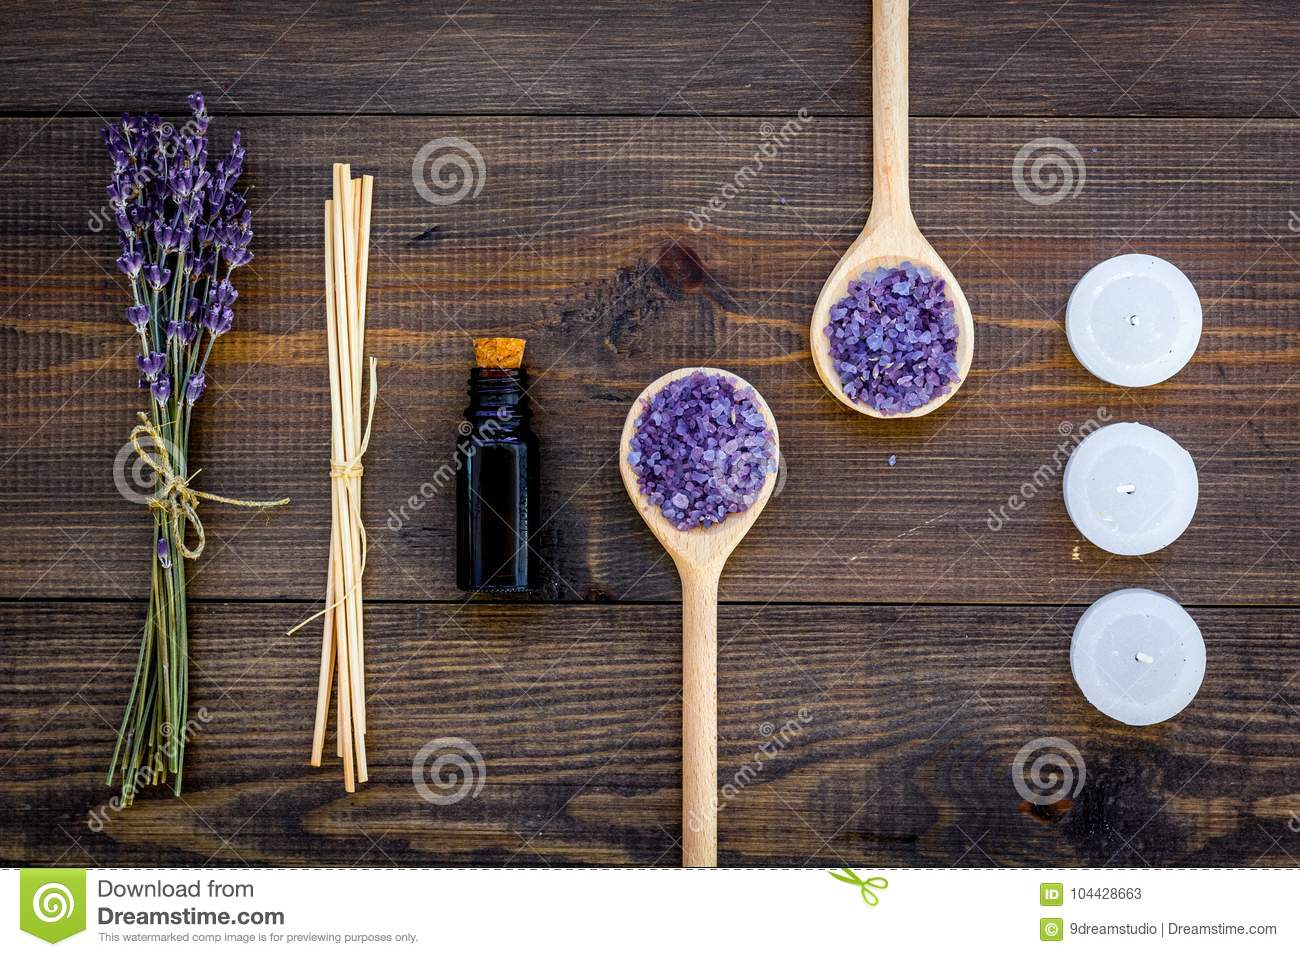 Skin care and relax. Cosmetics and aromatherapy concept. Lavender spa salt and oil on dark wooden background top view